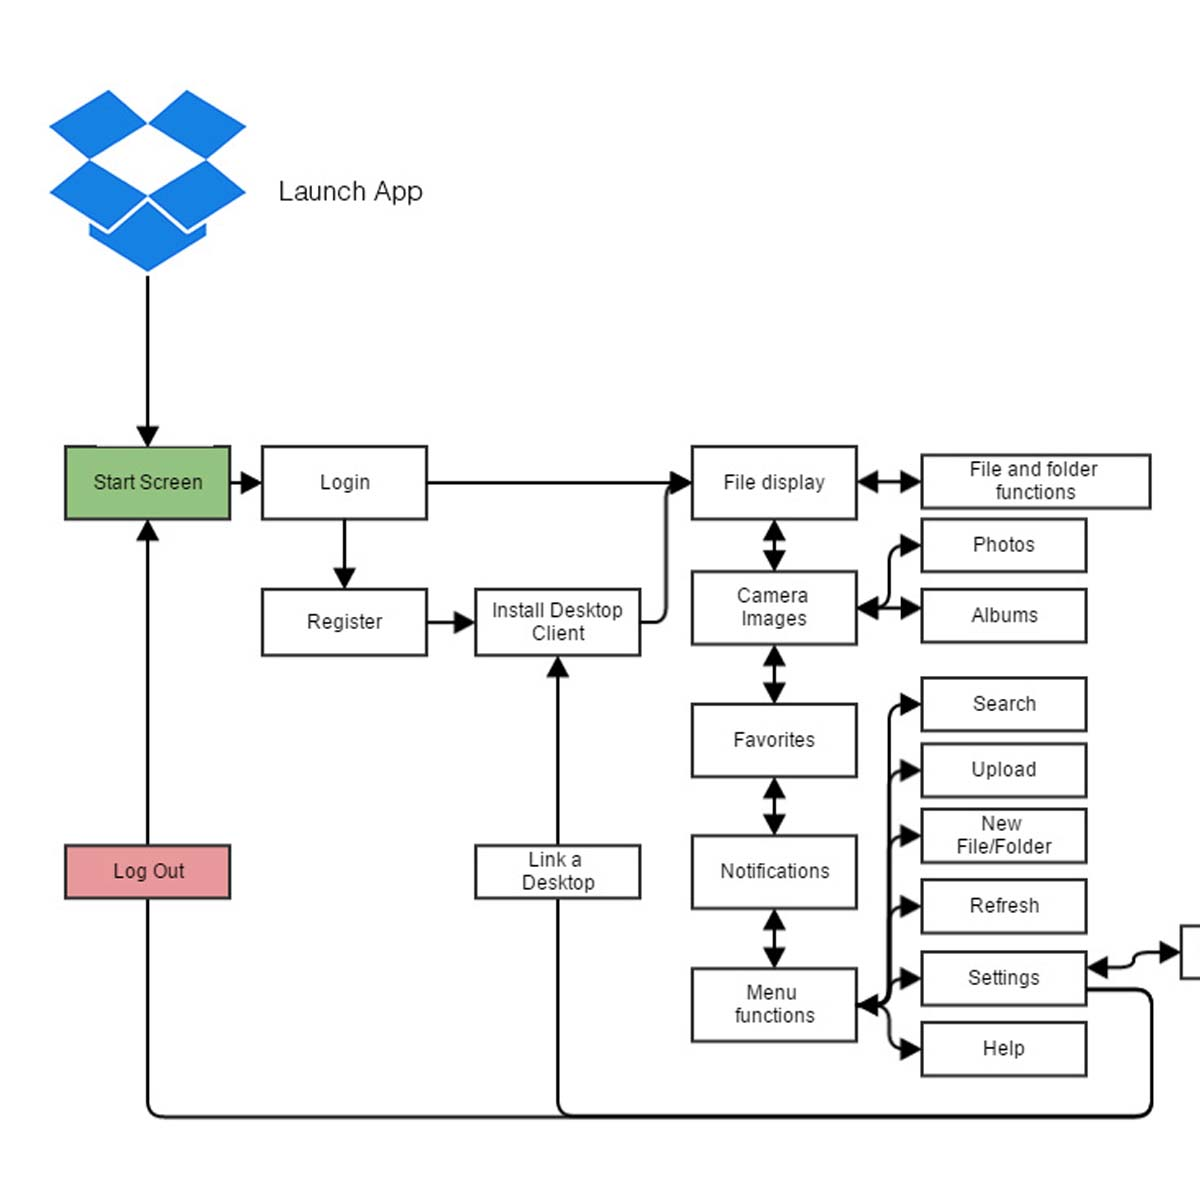 UX Analysis of Dropbox for Android